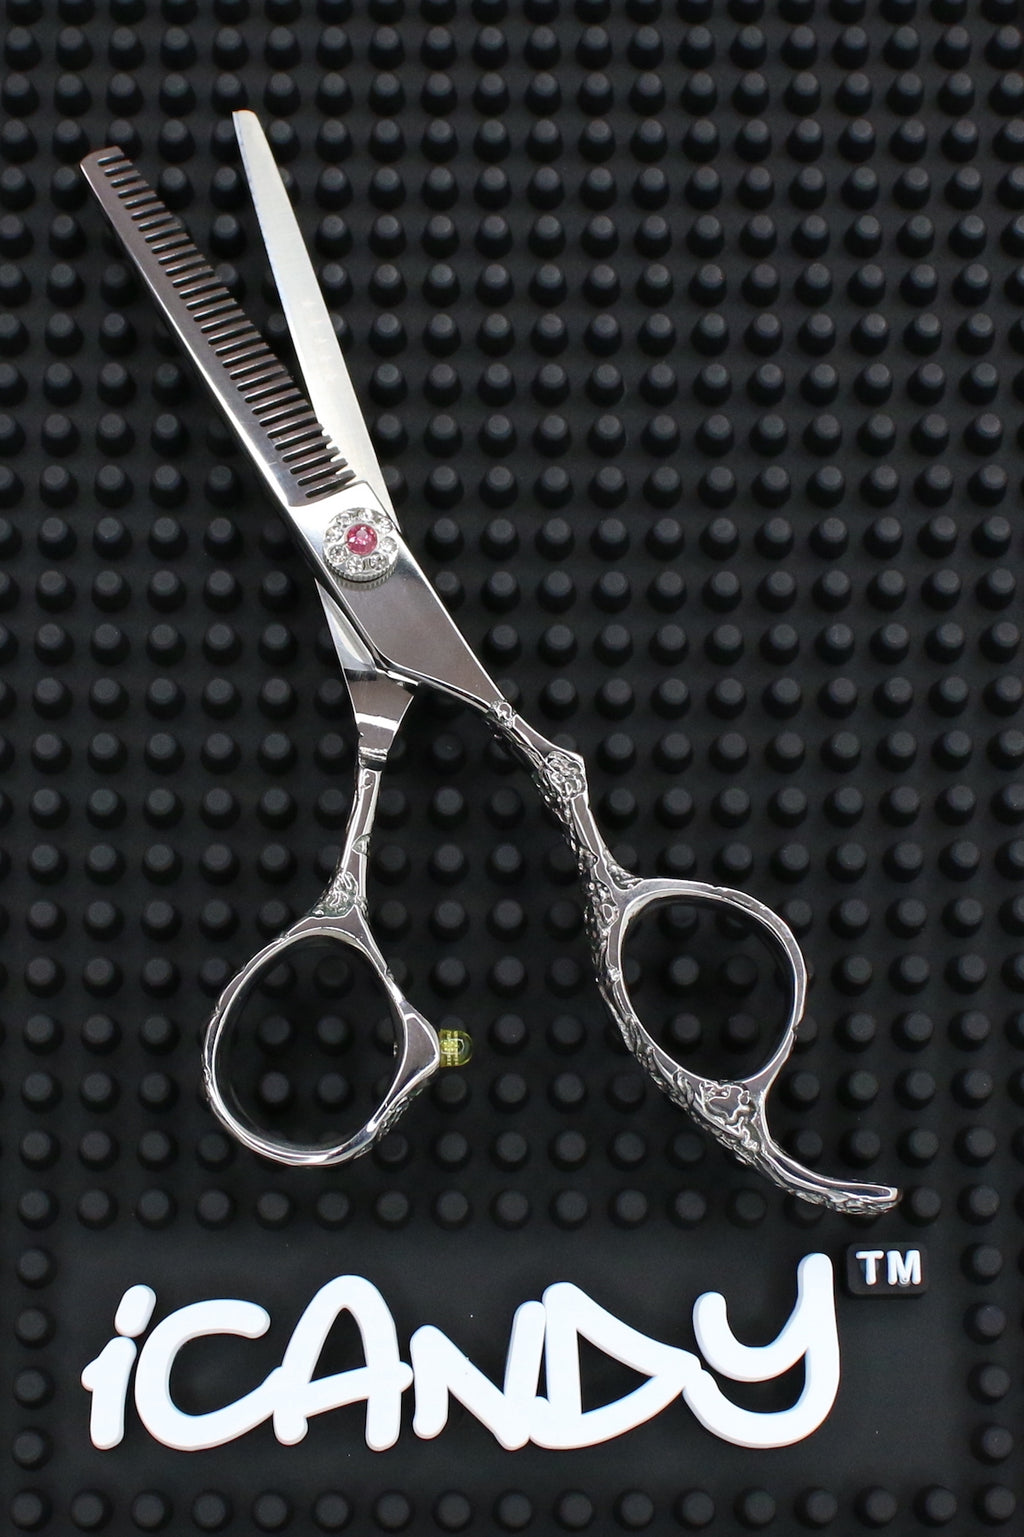 iCandy Dream Mirror-T Thinning Scissors - Limited Edition ! (5.5 inch) - iCandy Scissors